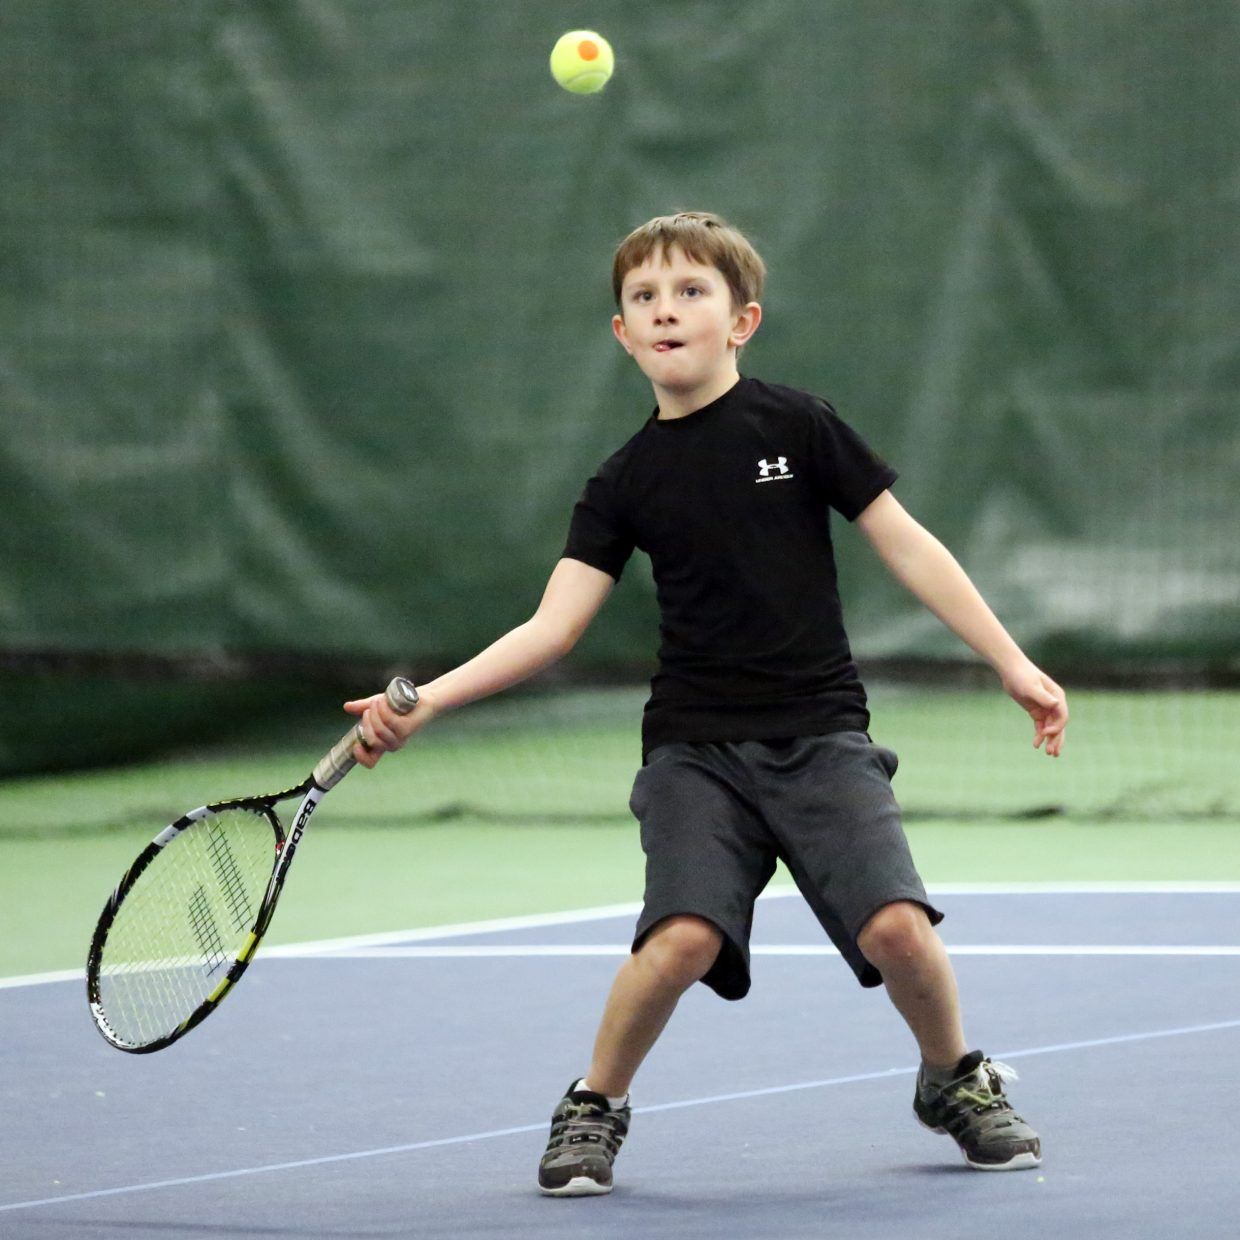 Alexander Craig competes in Sunday's Steamboat Springs City Adult MXD and Junior Championships at The Tennis Center.